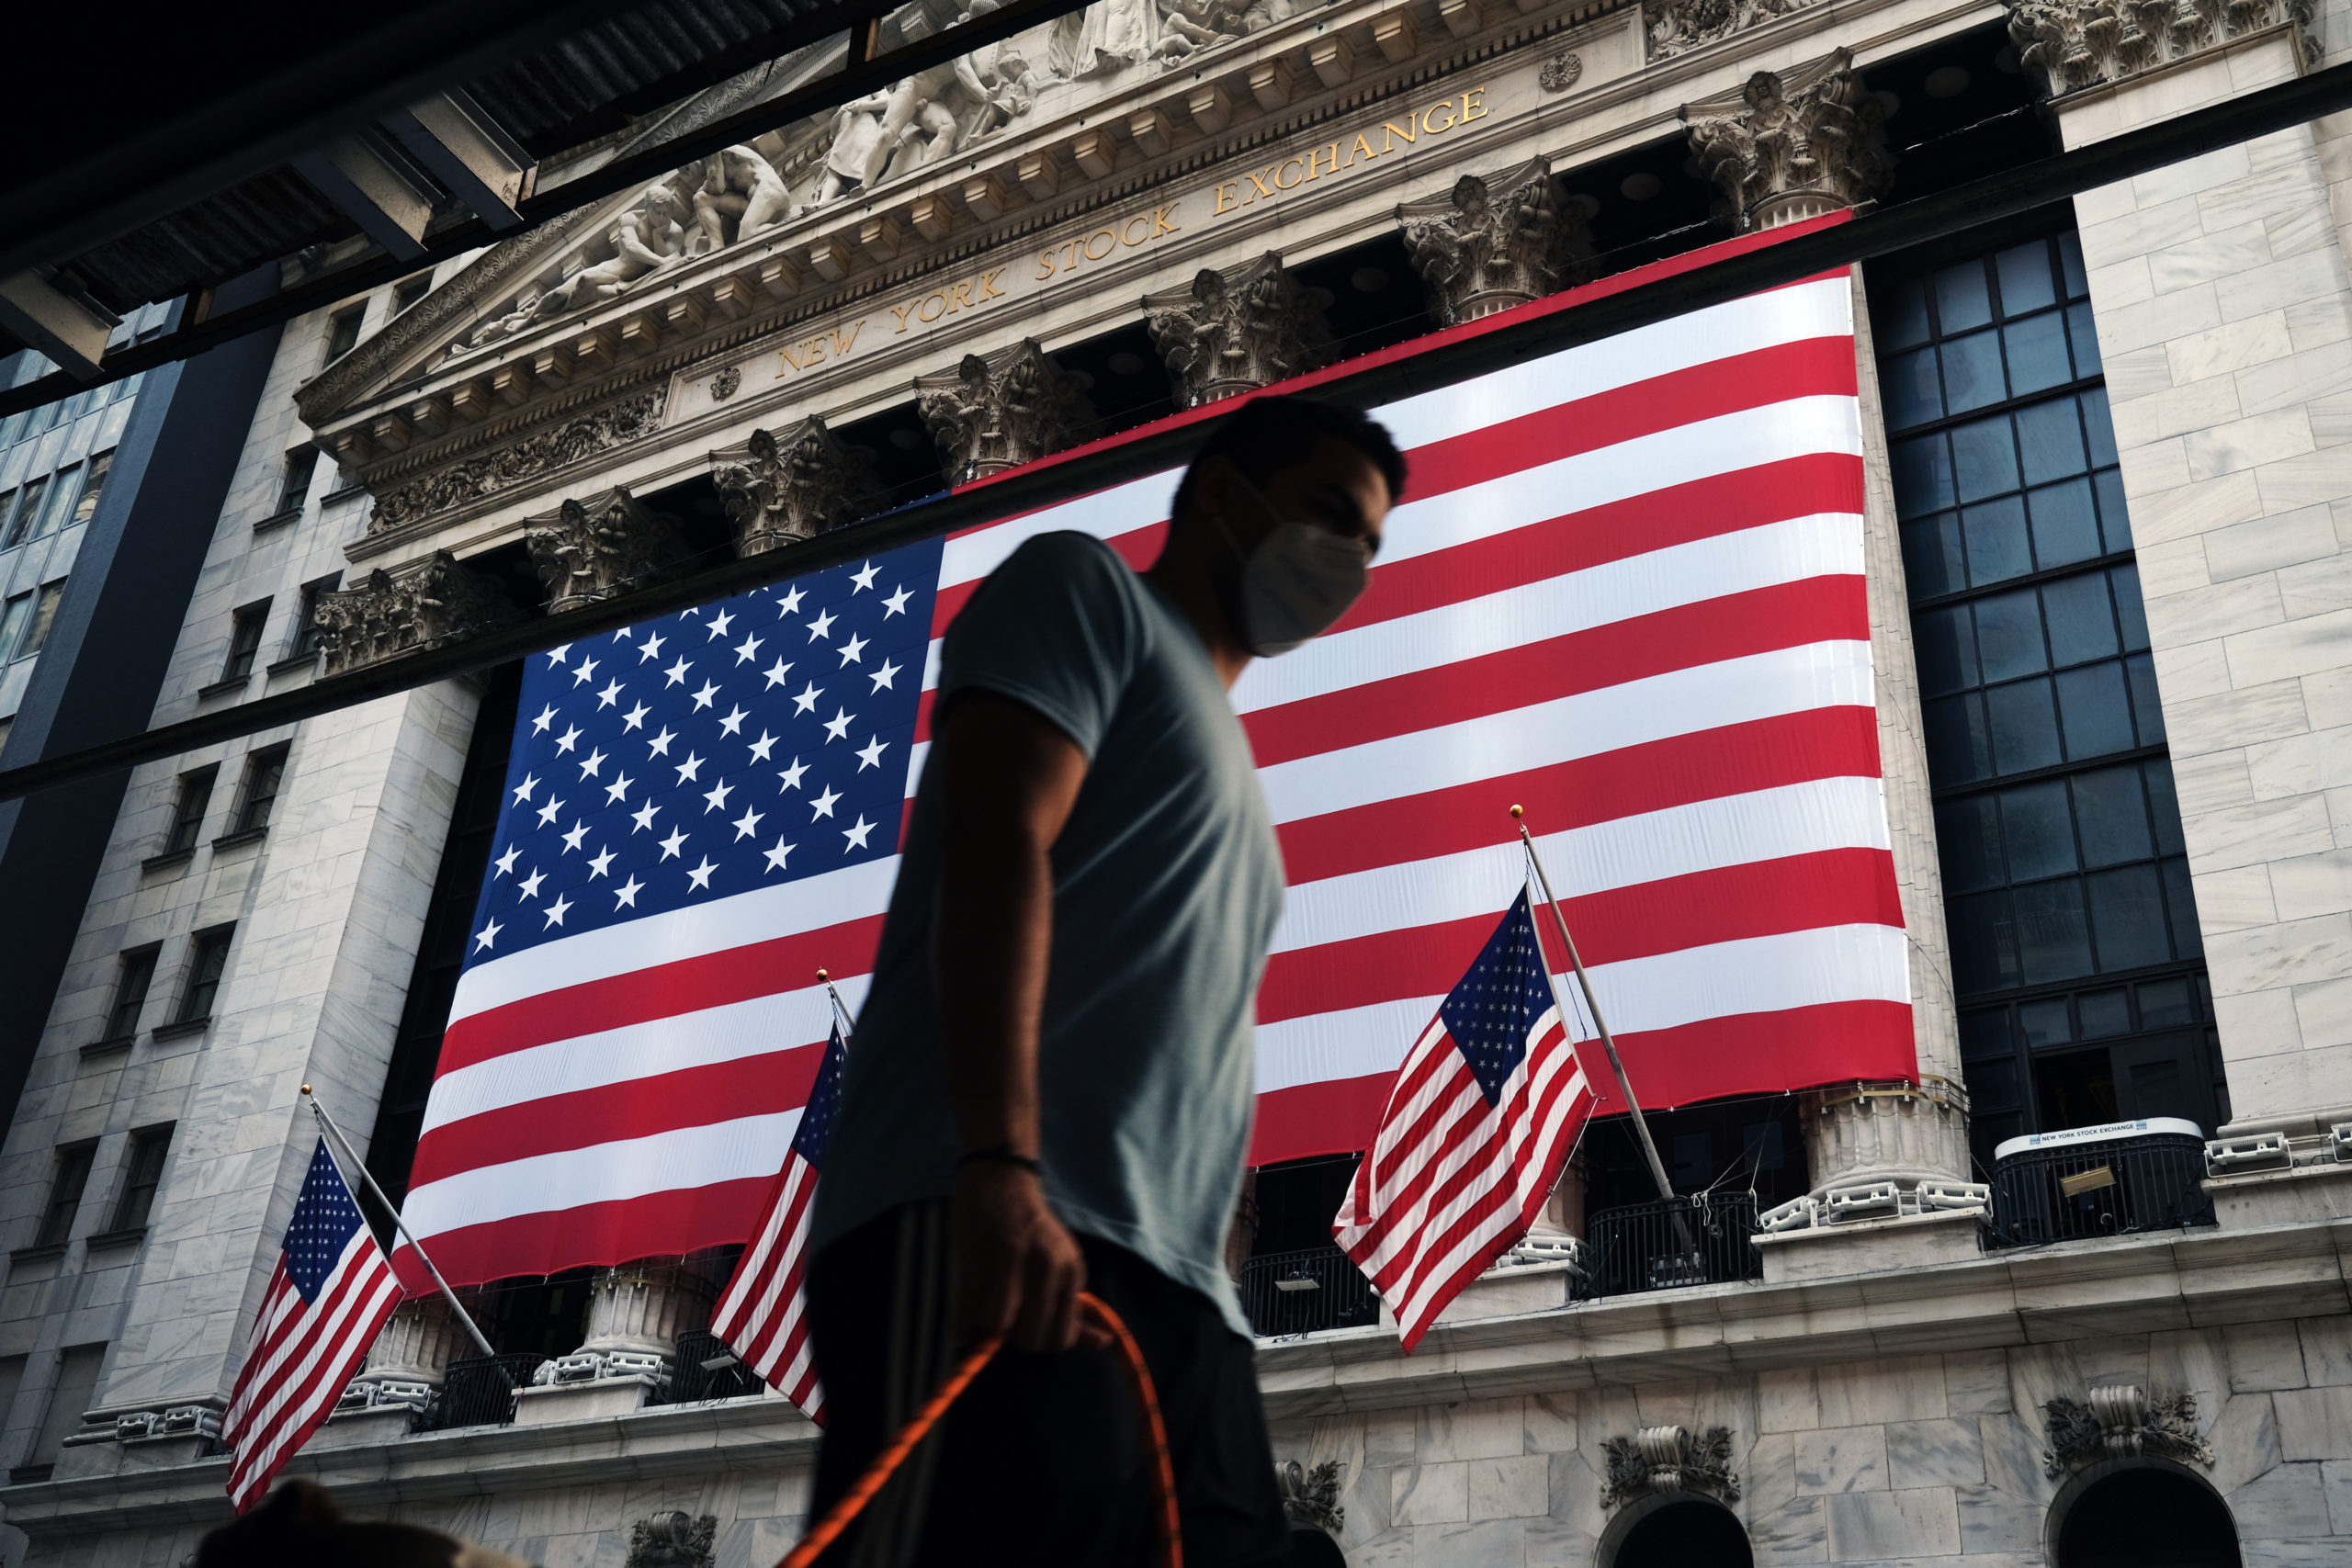 People walk by the New York Stock Exchange in New York City. (Spencer Platt/Getty Images)